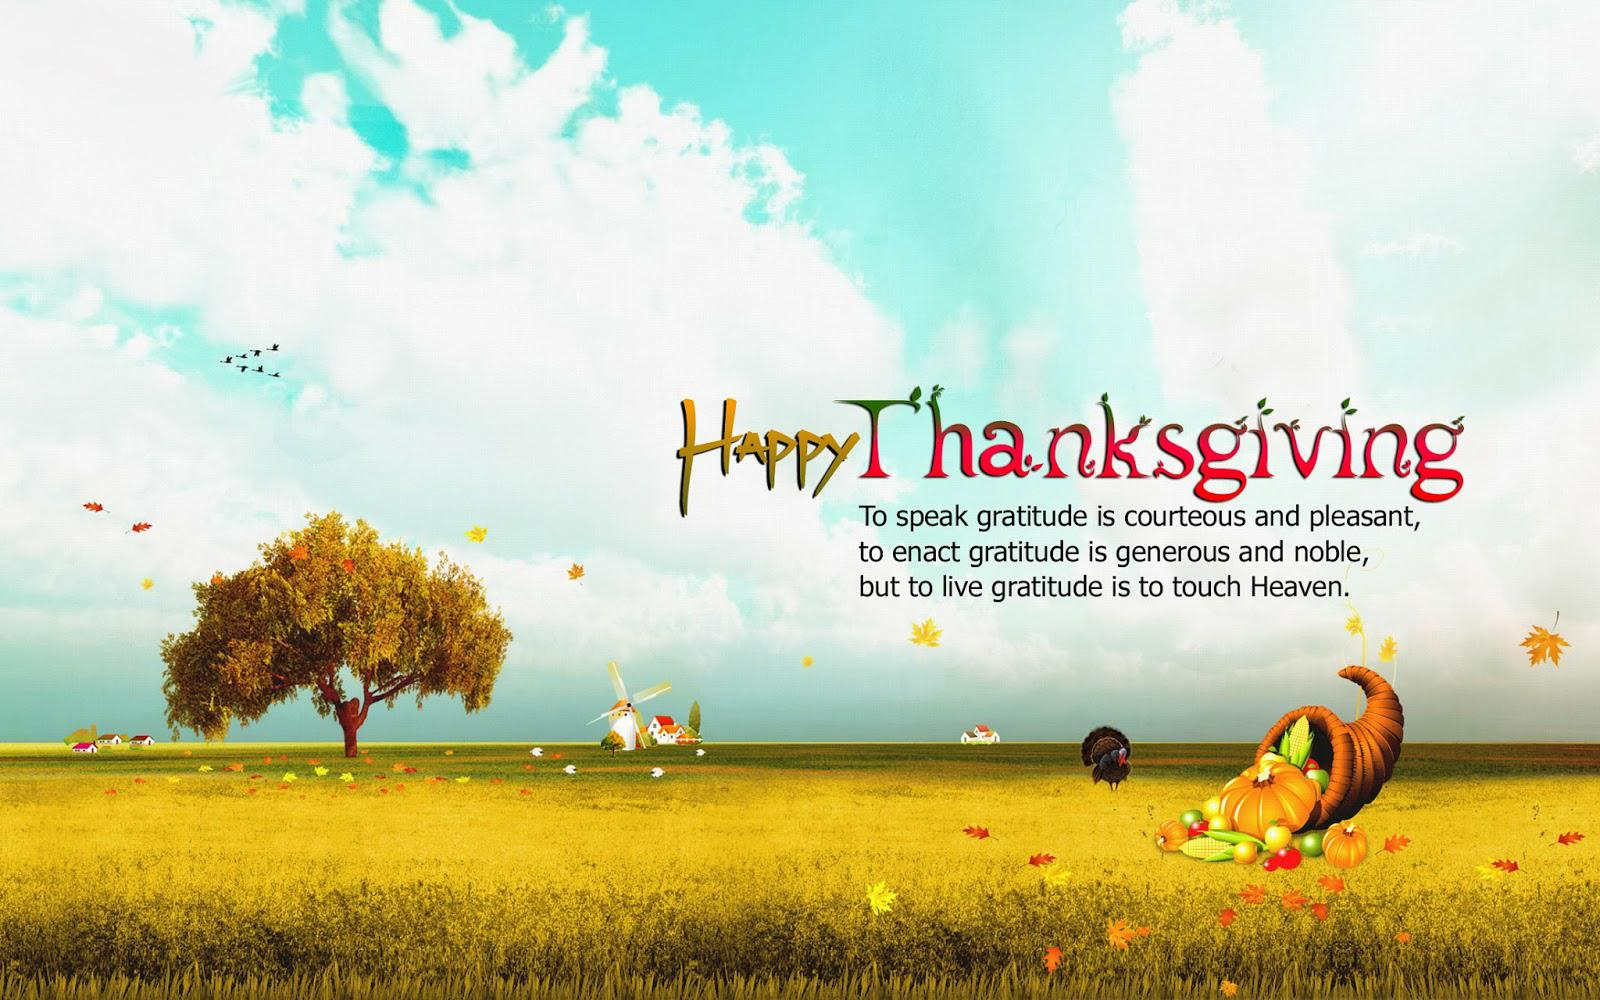 Happy Thanksgiving Greetings 2019 – Best Thanksgiving Greetings Images & Pictures